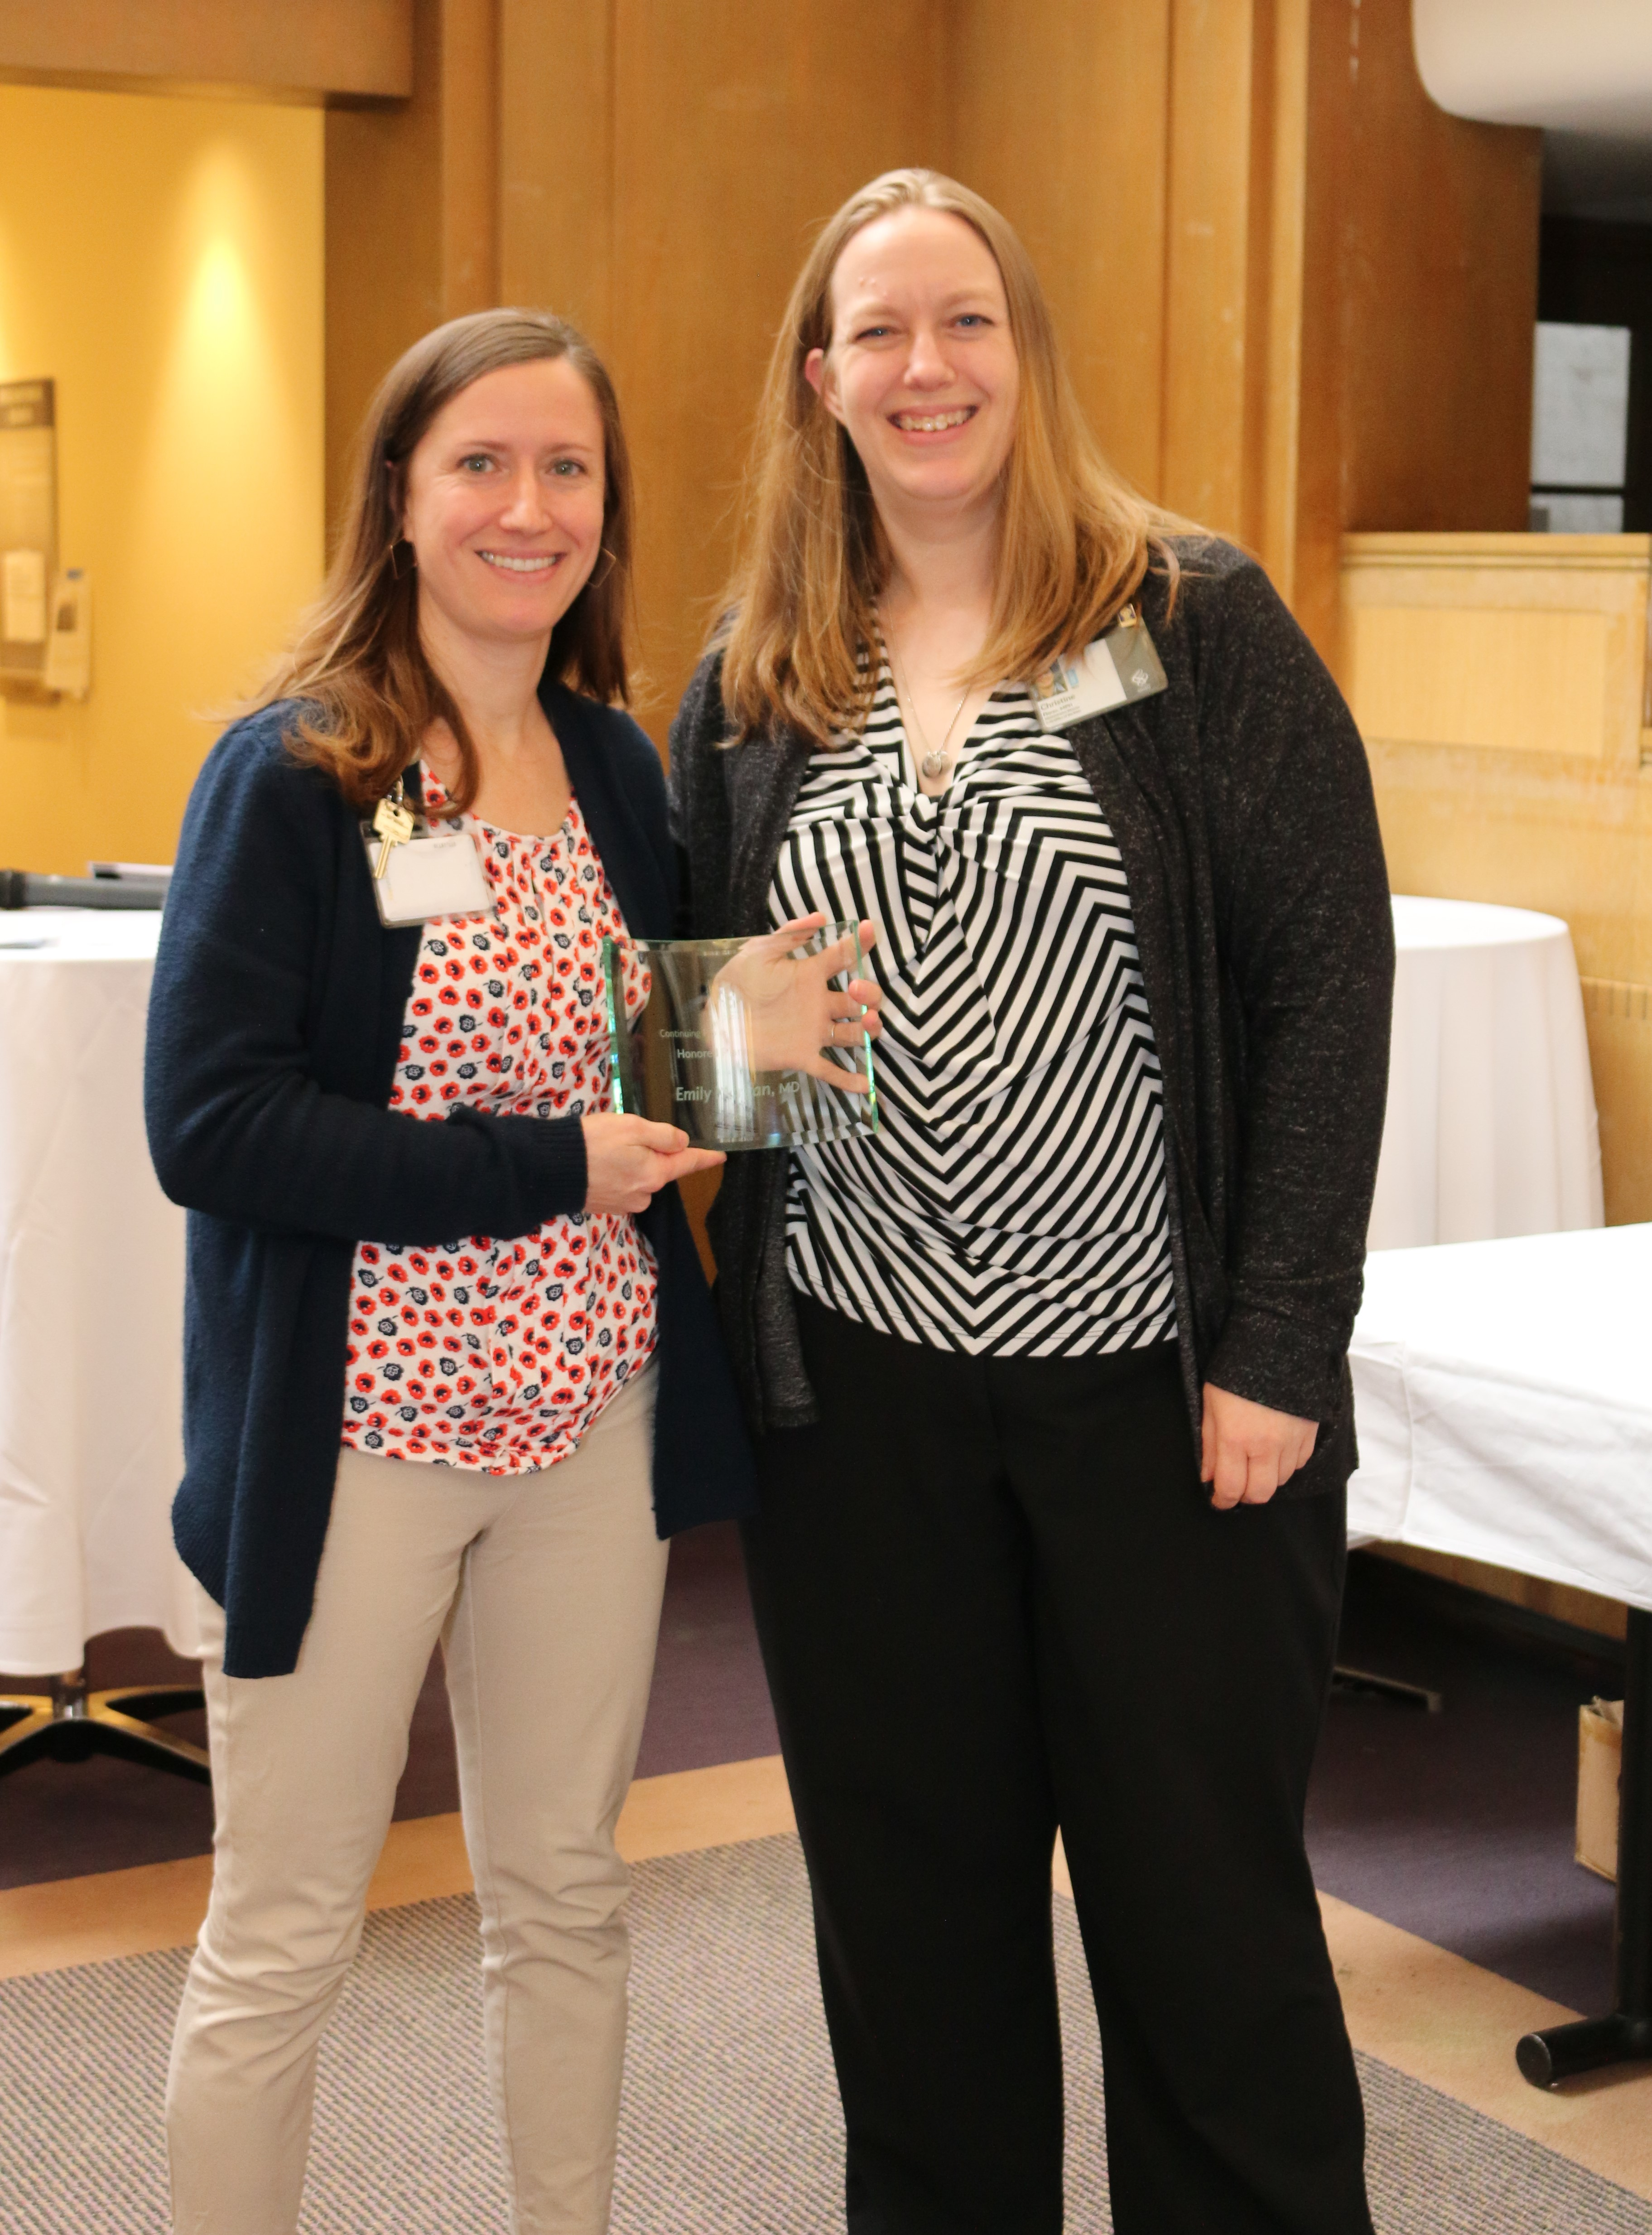 Emily Morgan, MD is presented the Honored Planner Award at CPD/FD Strategic Planning Retreat 2019